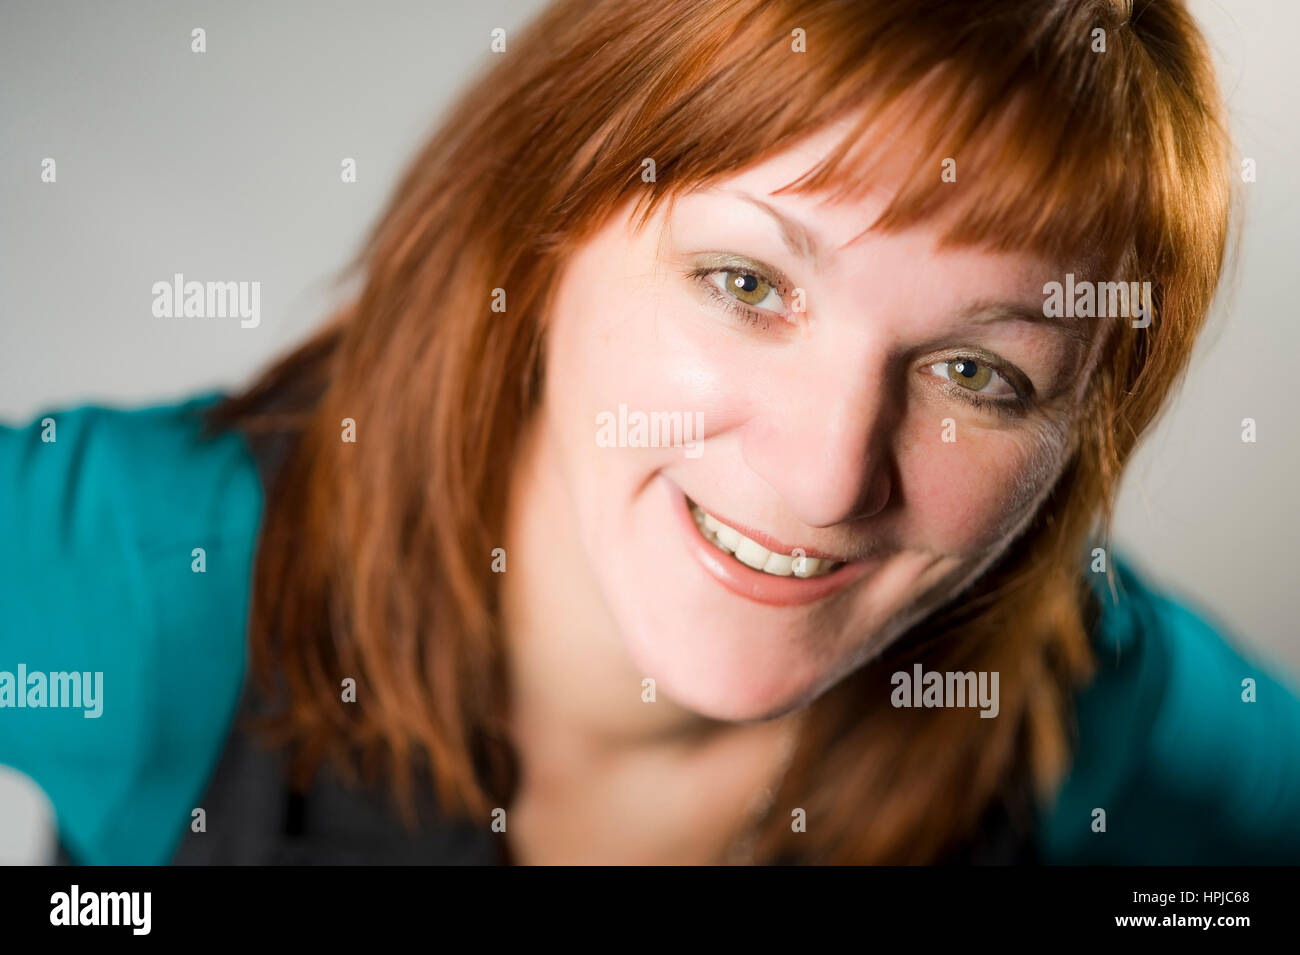 Model released , Rothaarige Frau im Portrait - red haired woman in portrait - Stock Image